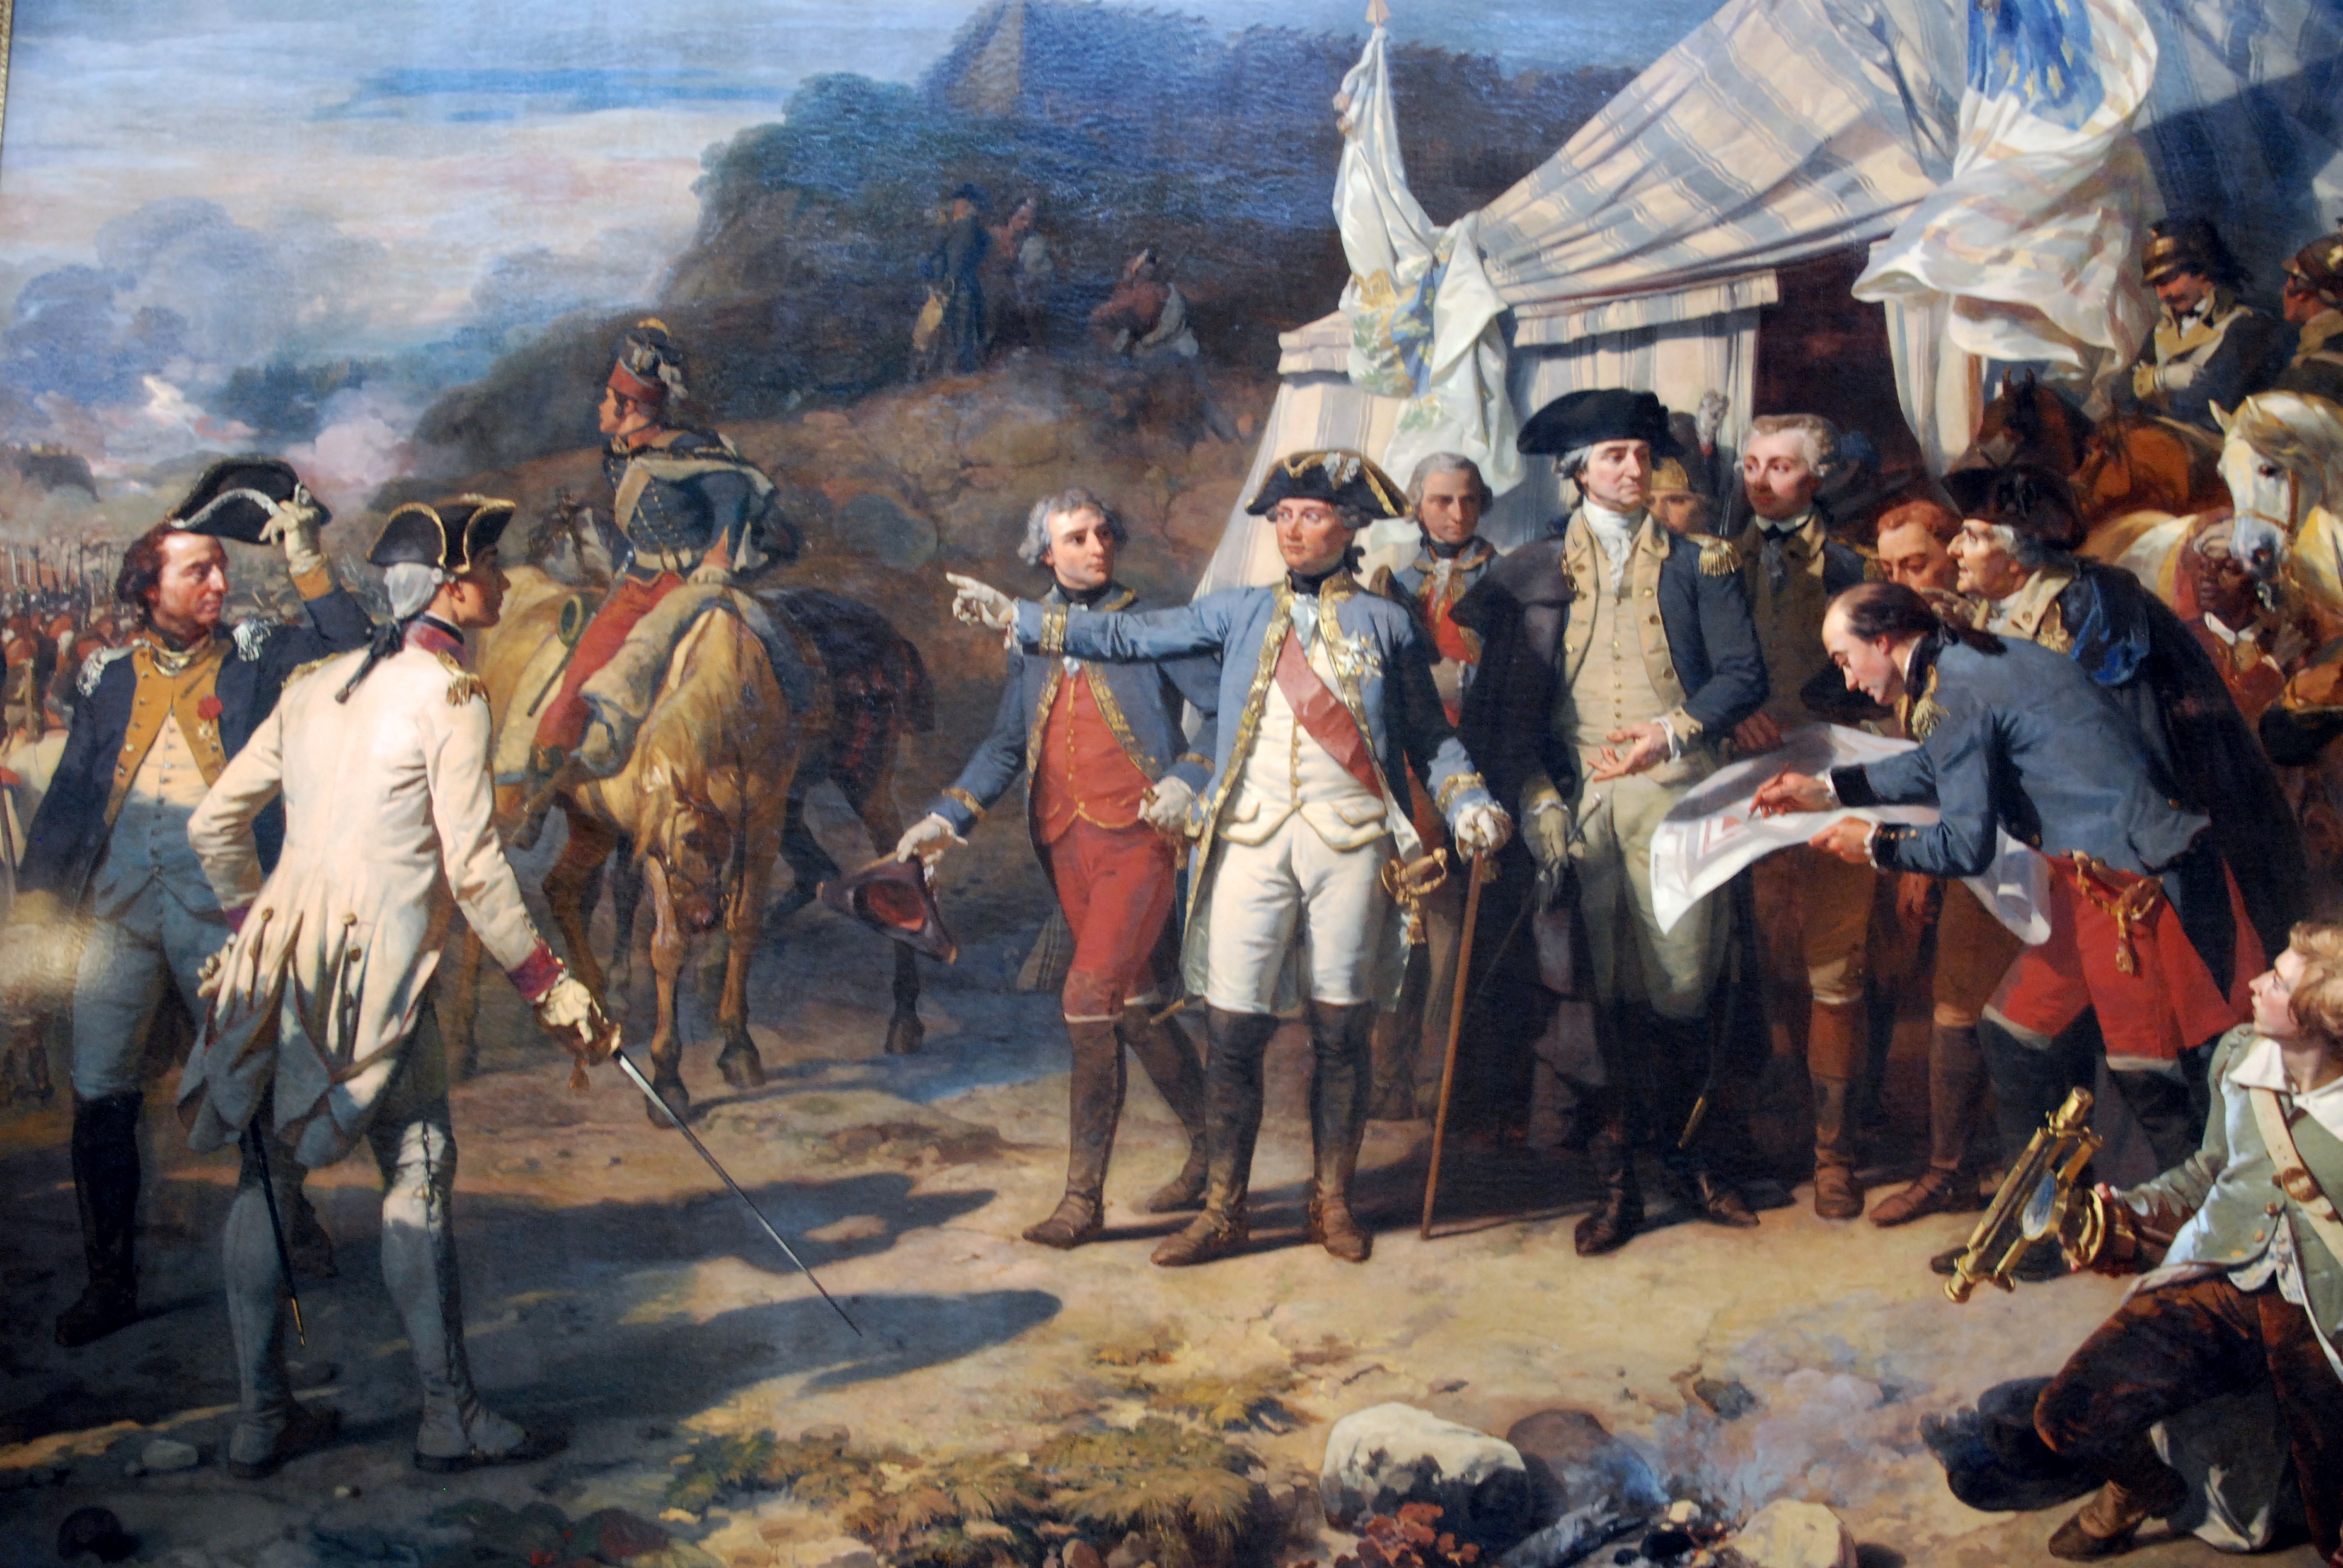 General Washington and the comte de Rochambeau at Yorktown by Auguste Couder, 1836